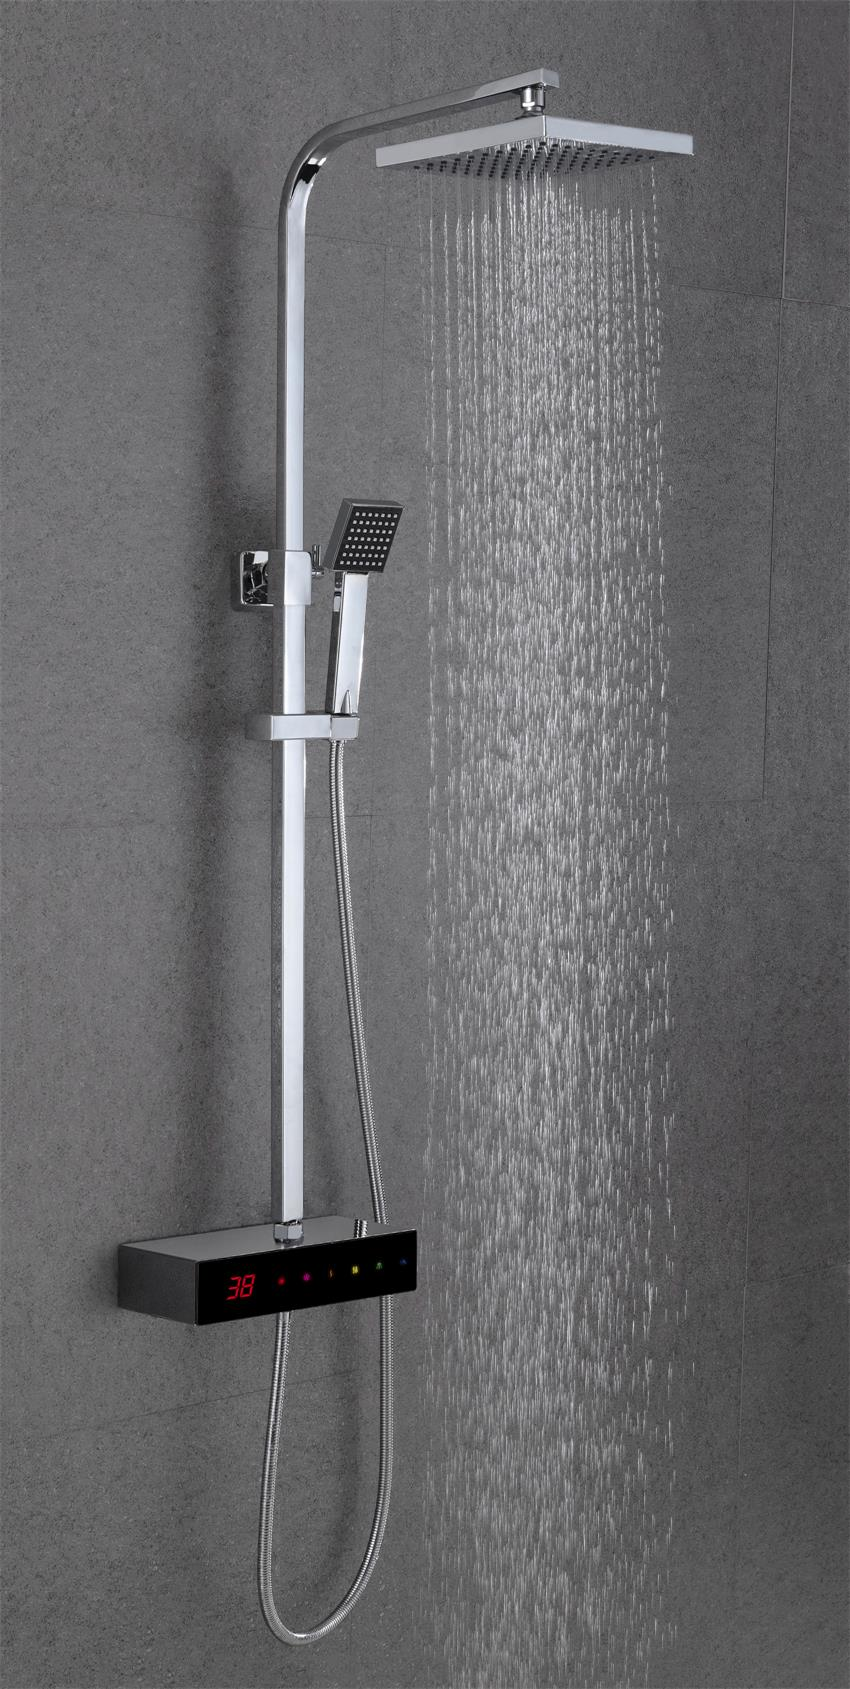 Full-touch screen digital thermostatic shower faucet XS-M9205